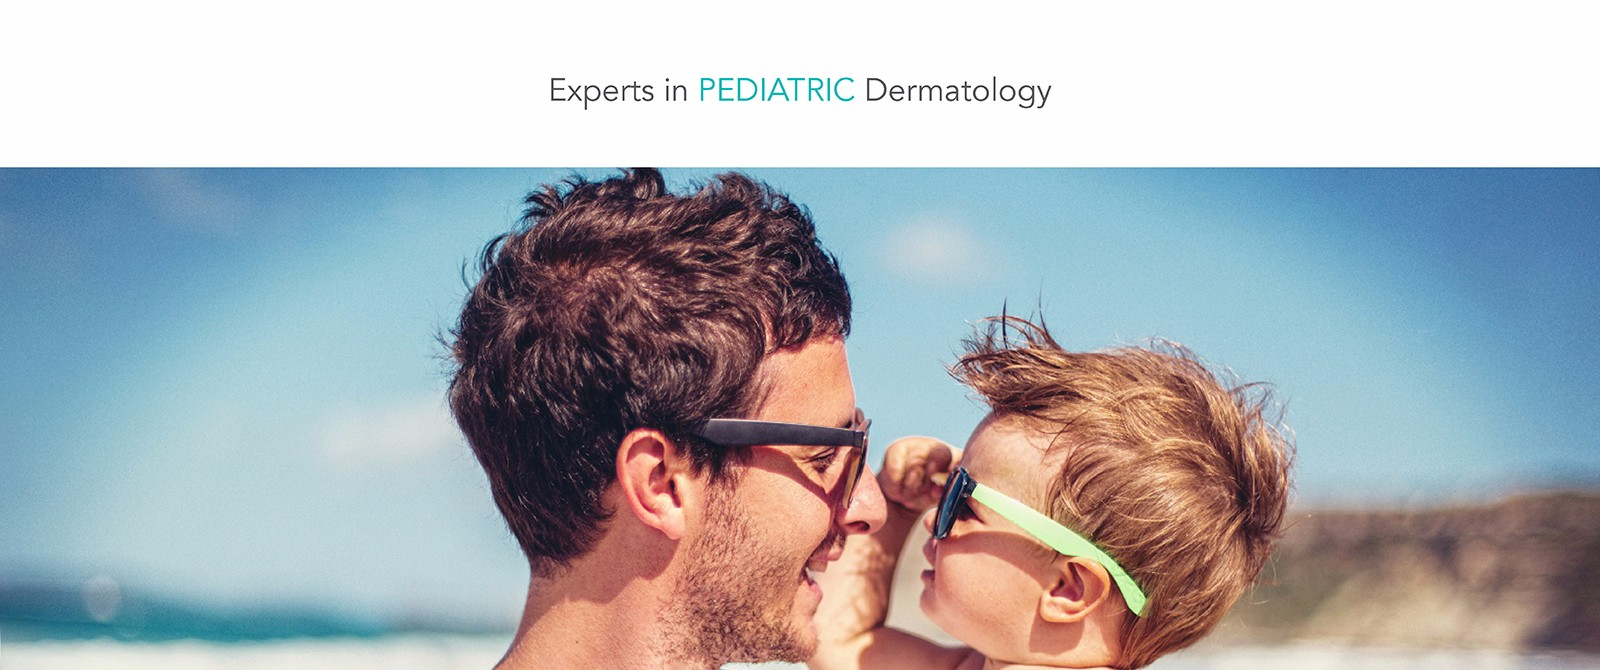 Lotus Dermatology - Experts in Pediatrics